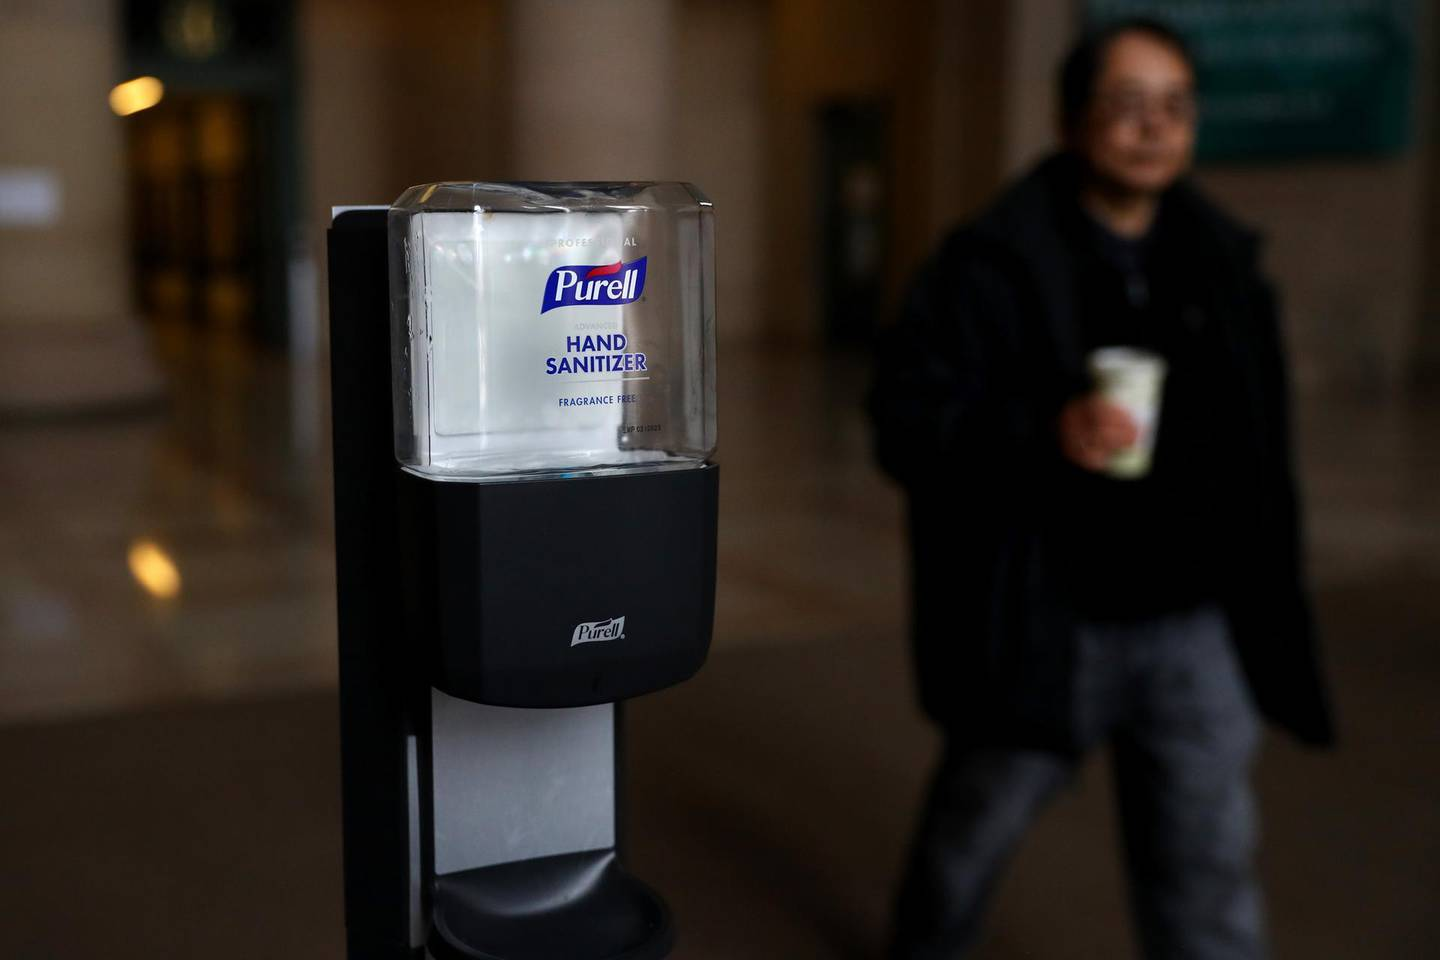 CAMBRIDGE, MASSACHUSETTS - MARCH 12: Purell hand sanitizer inside the Information Center on the campus of Massachusetts Institute of Technology on March 12, 2020 in Cambridge, Massachusetts. Students have been asked to move out of their dorms by March 17 due to the Coronavirus (COVID-19). risk. All classes will be moved online for the rest of the spring semester.   Maddie Meyer/Getty Images/AFP == FOR NEWSPAPERS, INTERNET, TELCOS & TELEVISION USE ONLY ==